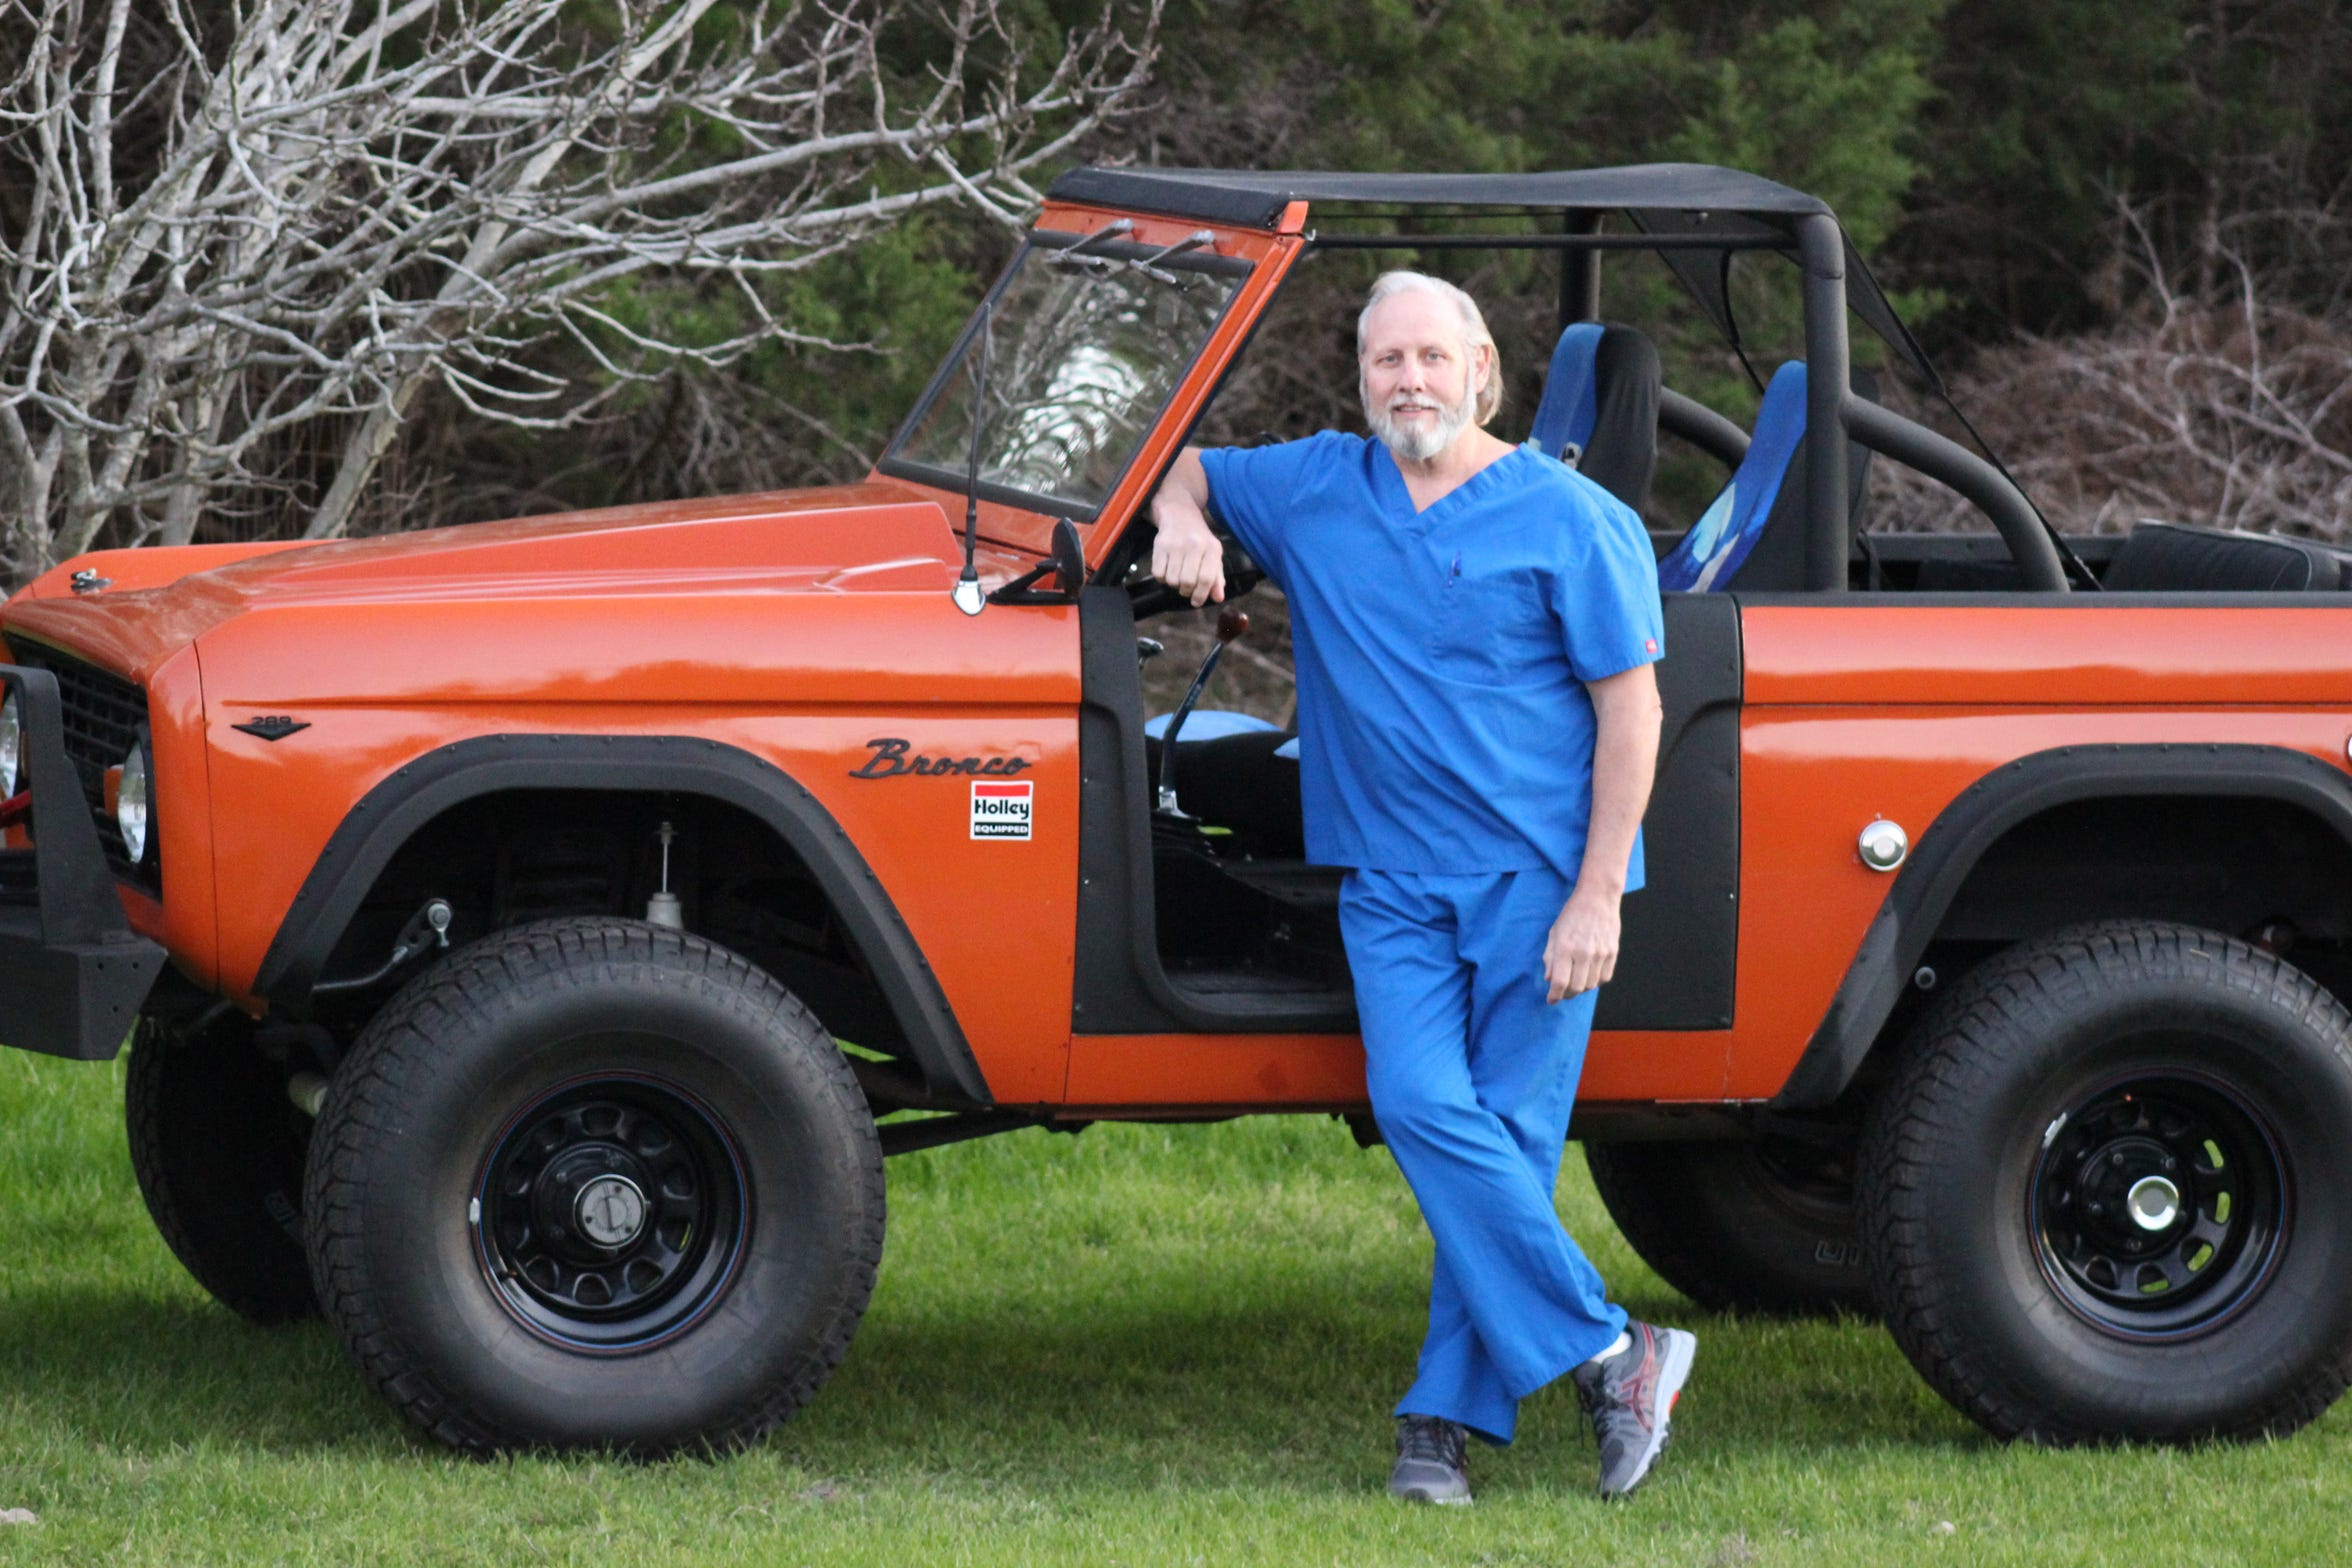 John Hall, a physician and film producer, in Bulverde, Texas, uses his Broncos like this 1967 roadster to trek the rough terrain of his deer-hunting ranch in Bandera, Texas.